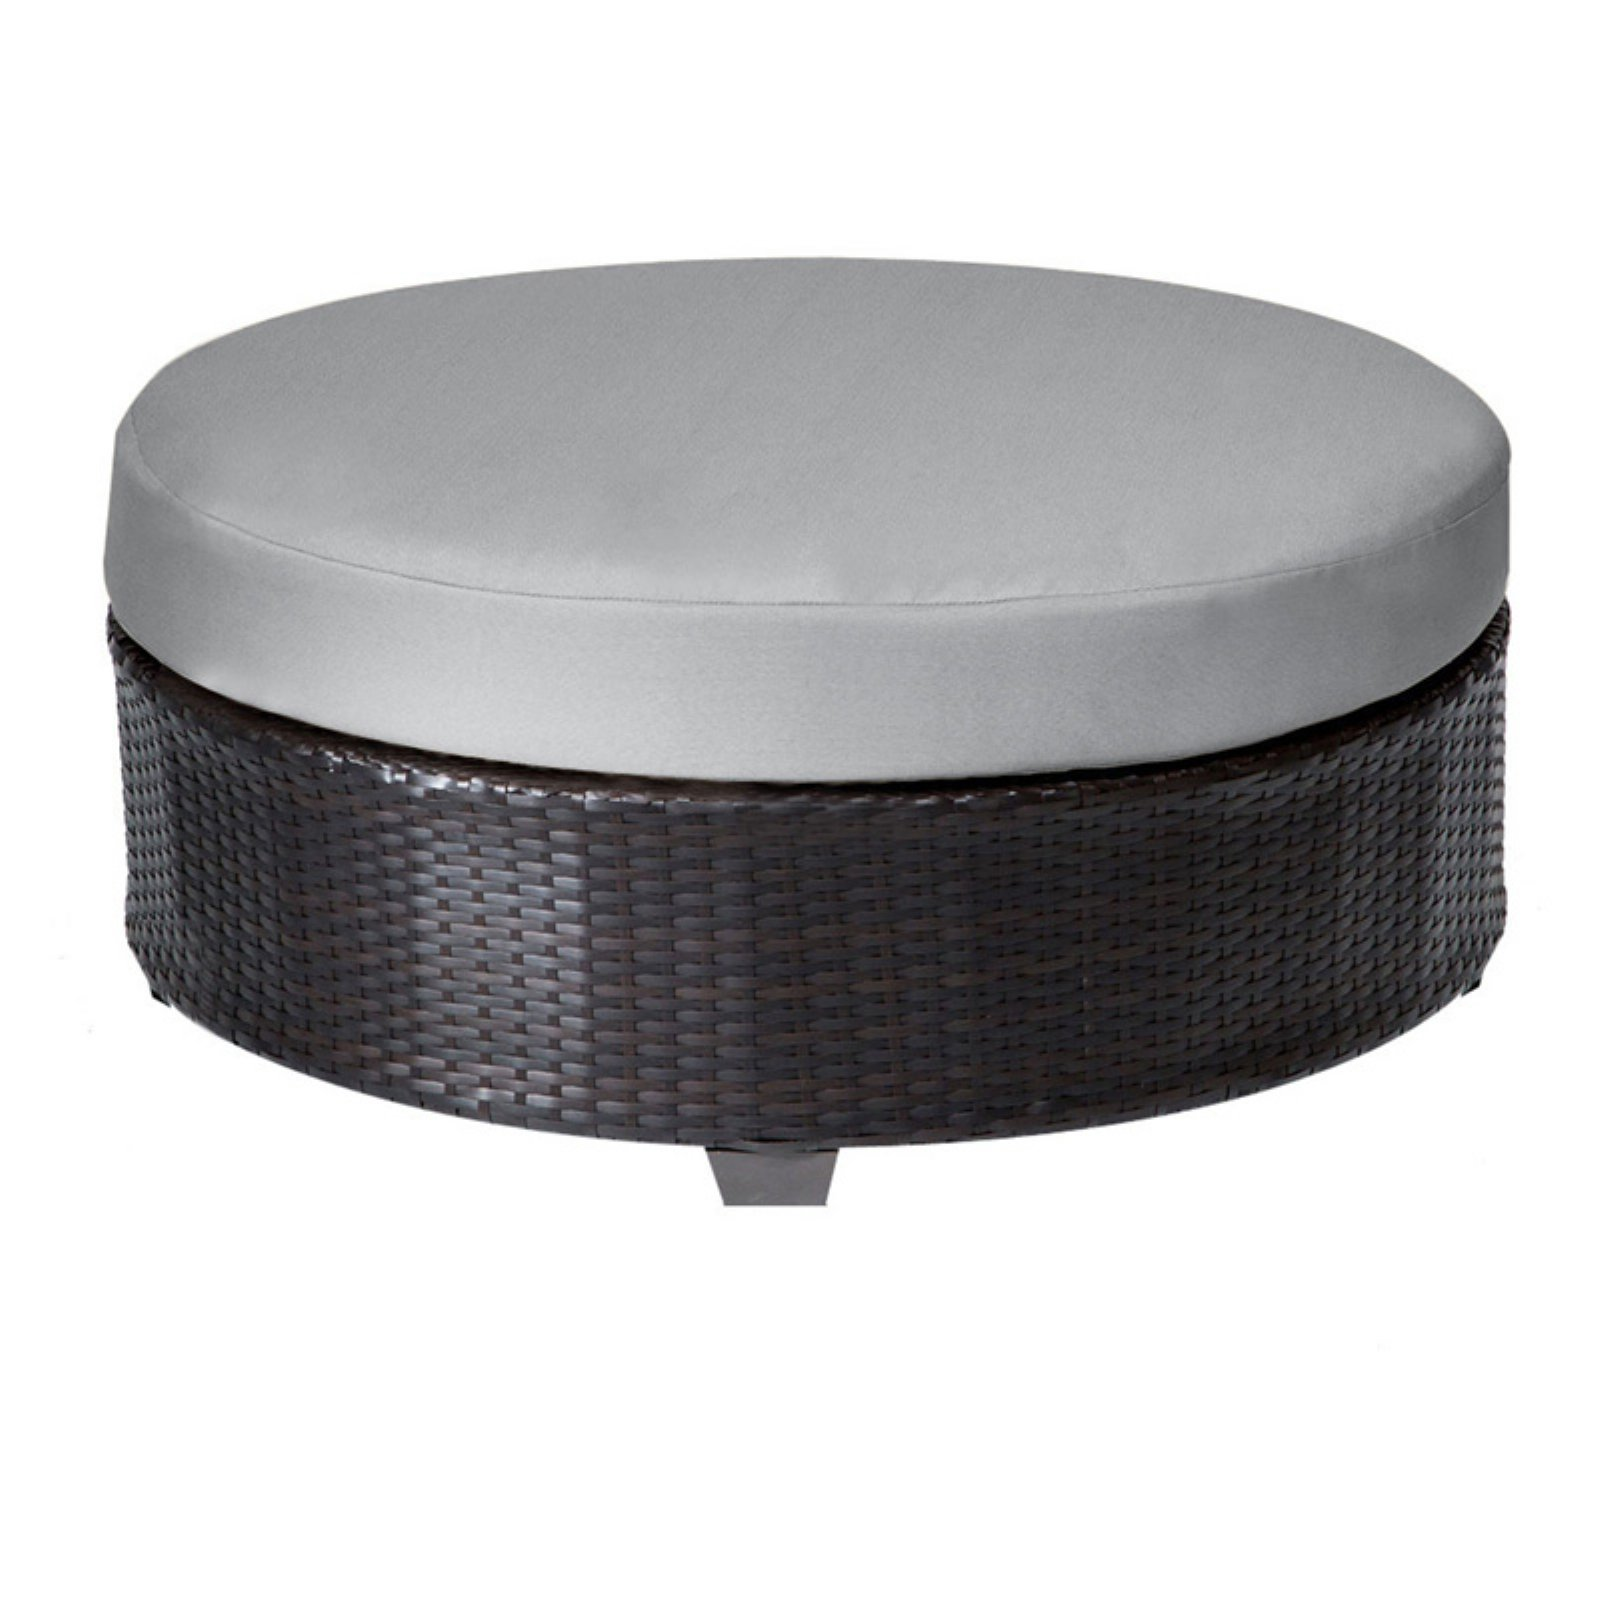 Round Coffee Table Set Of 2: TK Classics Barbados Round Outdoor Coffee Table